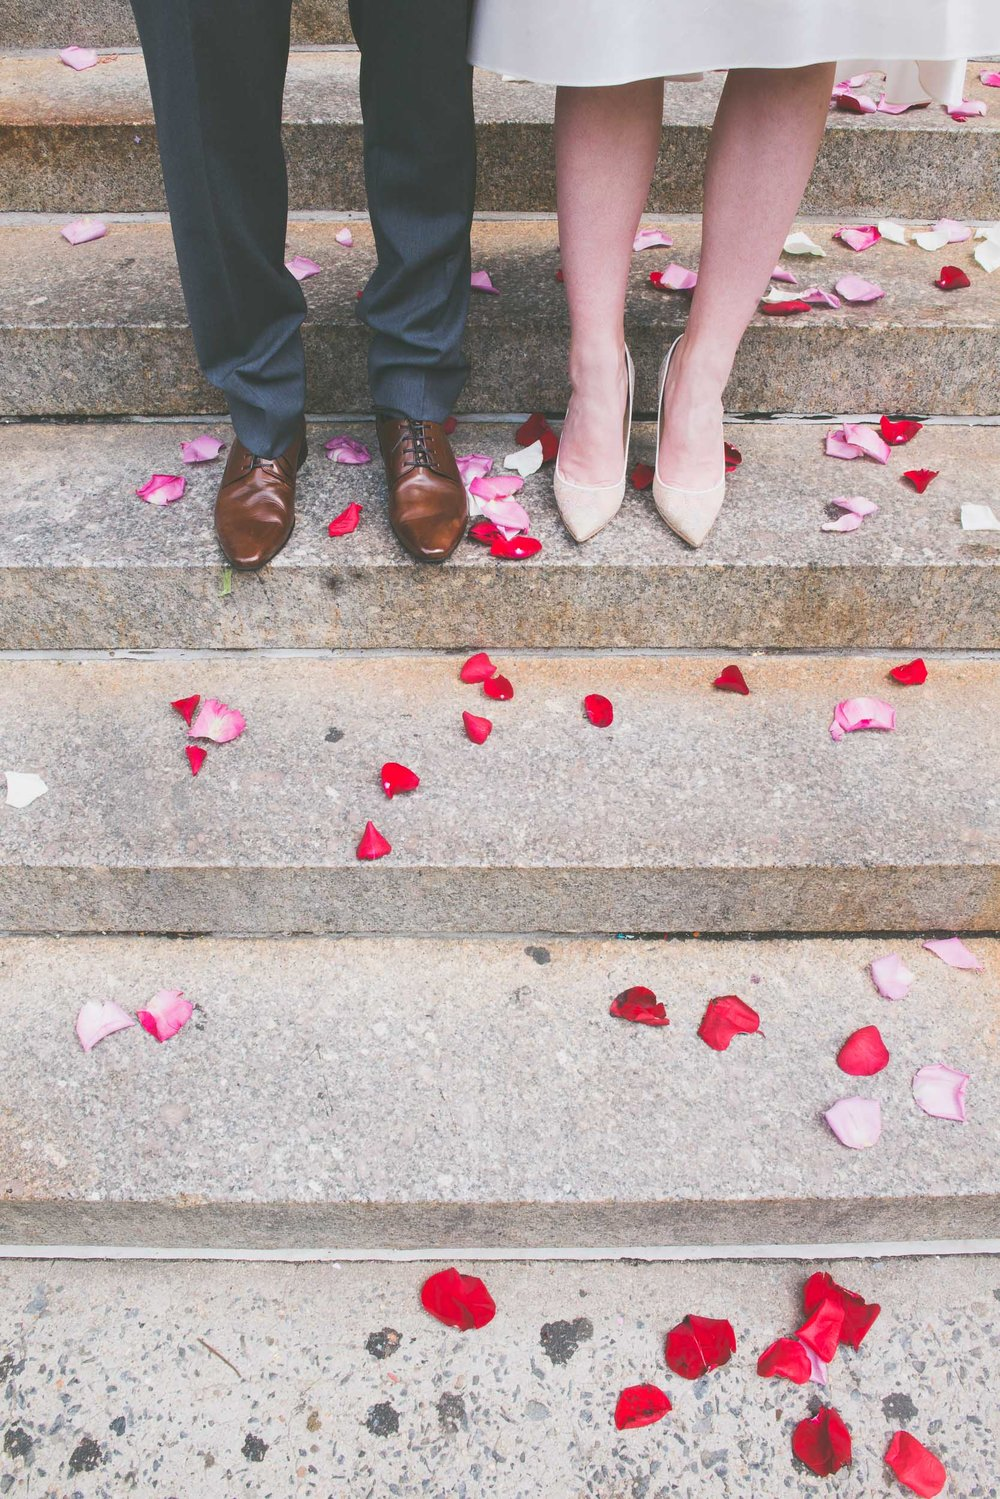 Legs - Weddings - Photo credit Nicola Bailey.jpg